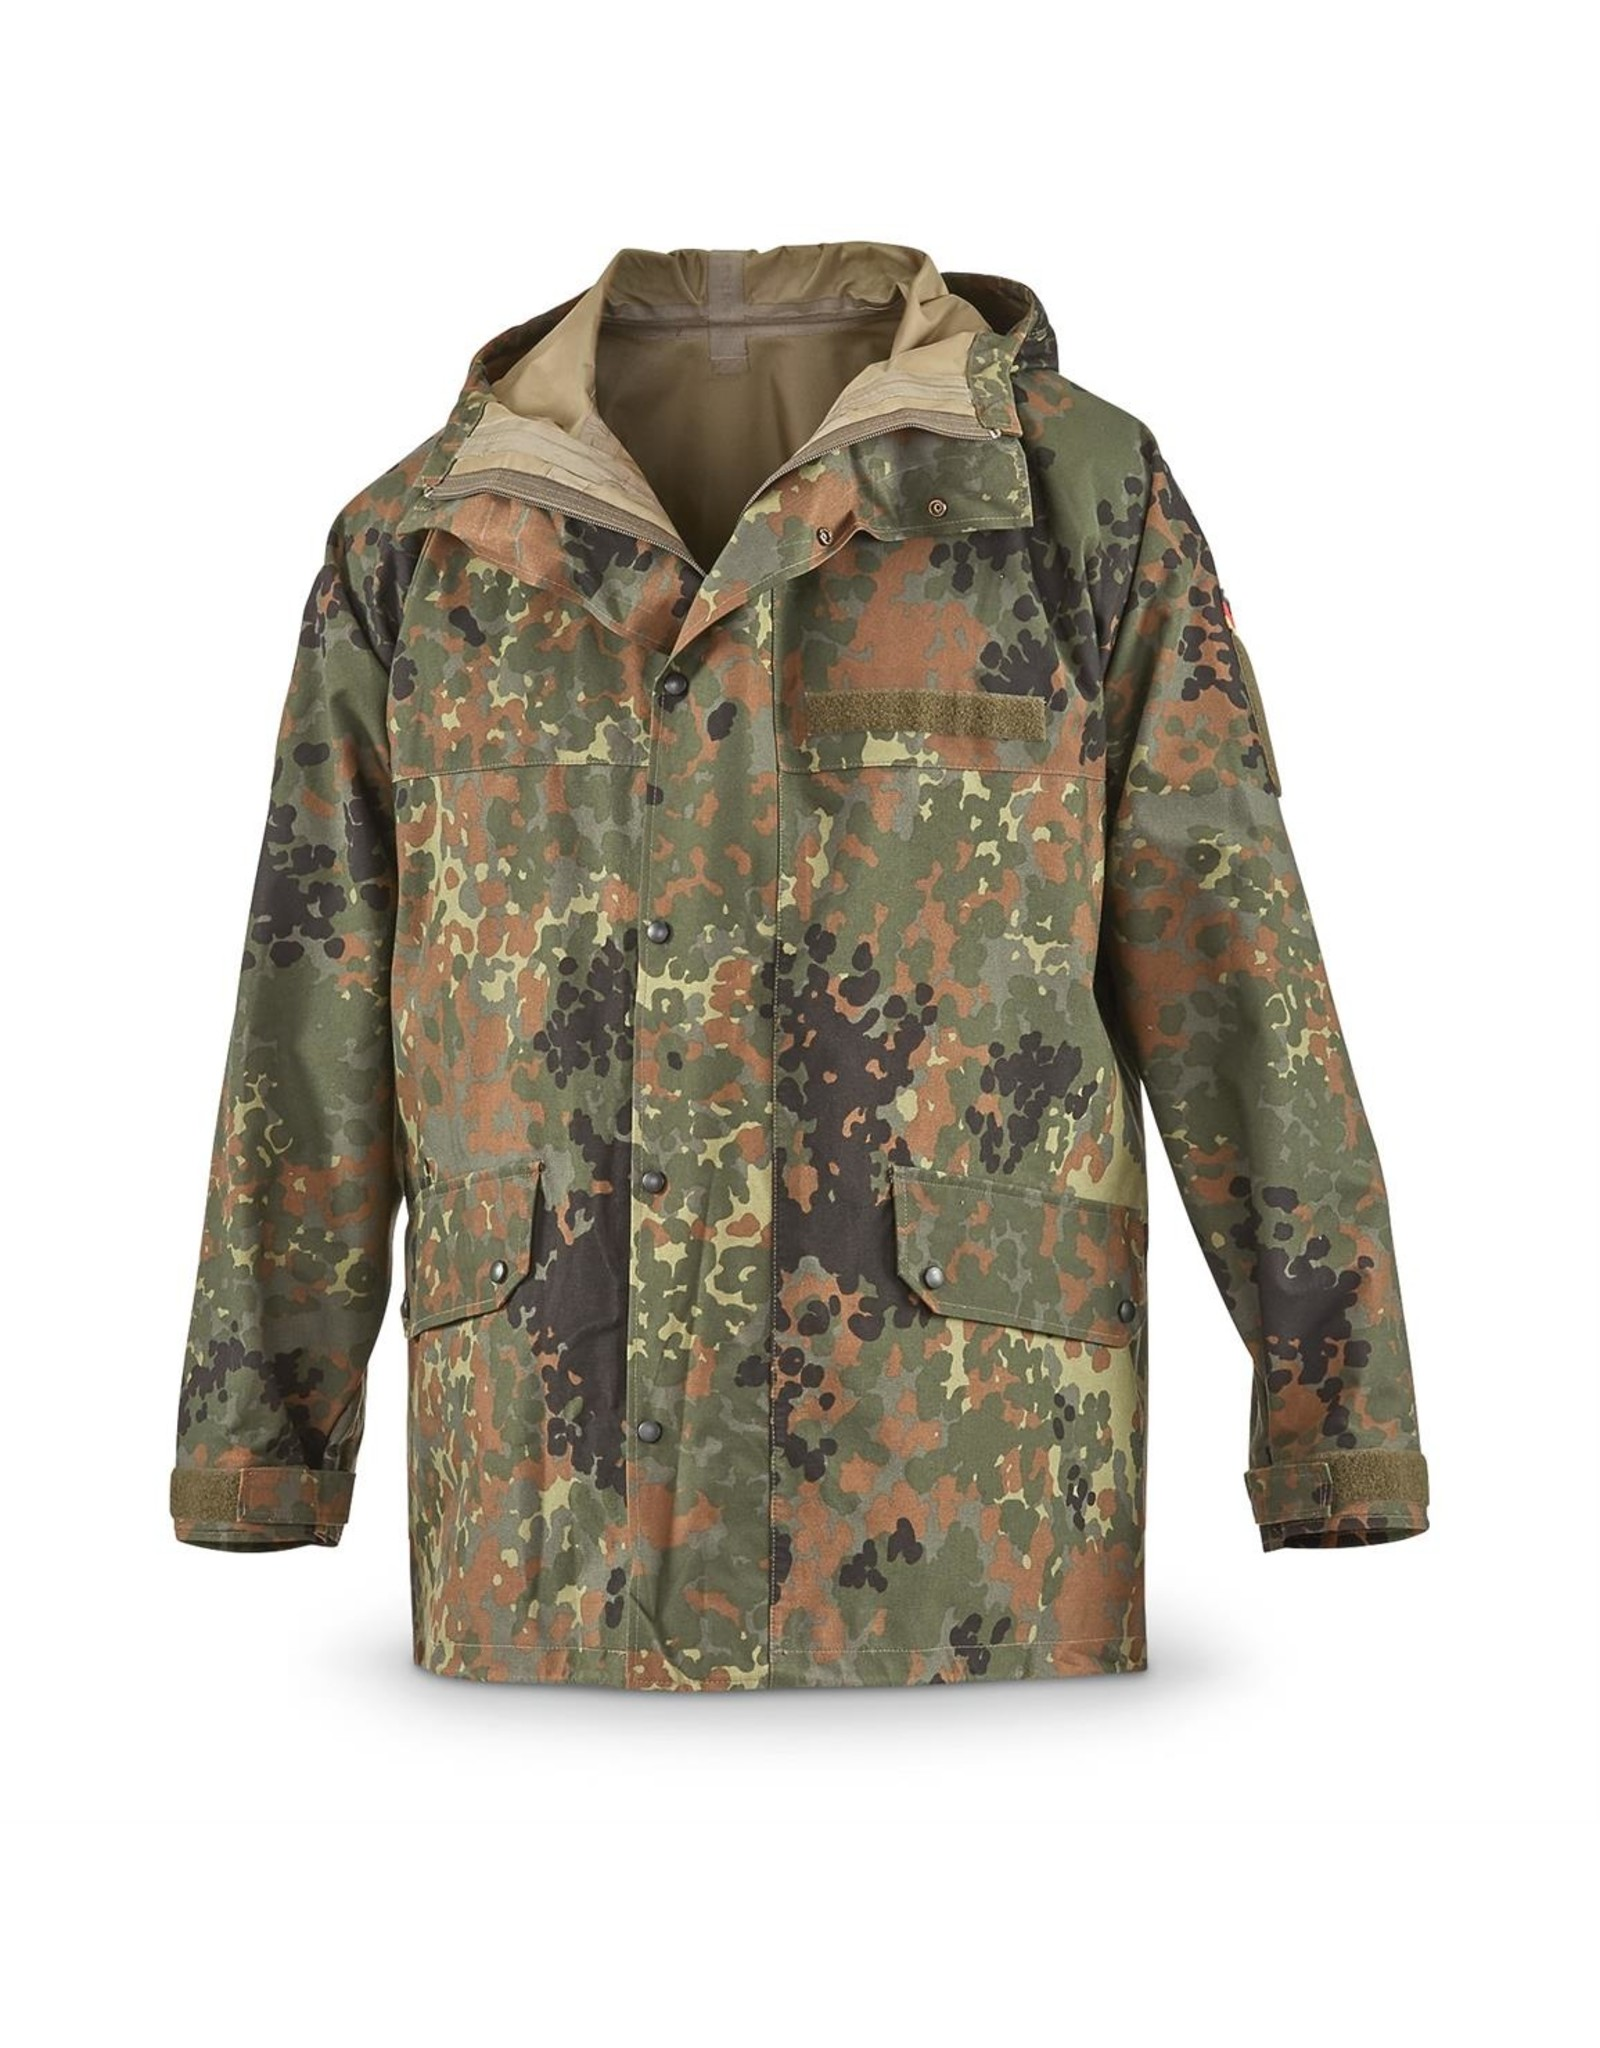 STURM MILSPEC FLECKTARN GORTEX JACKET-USED